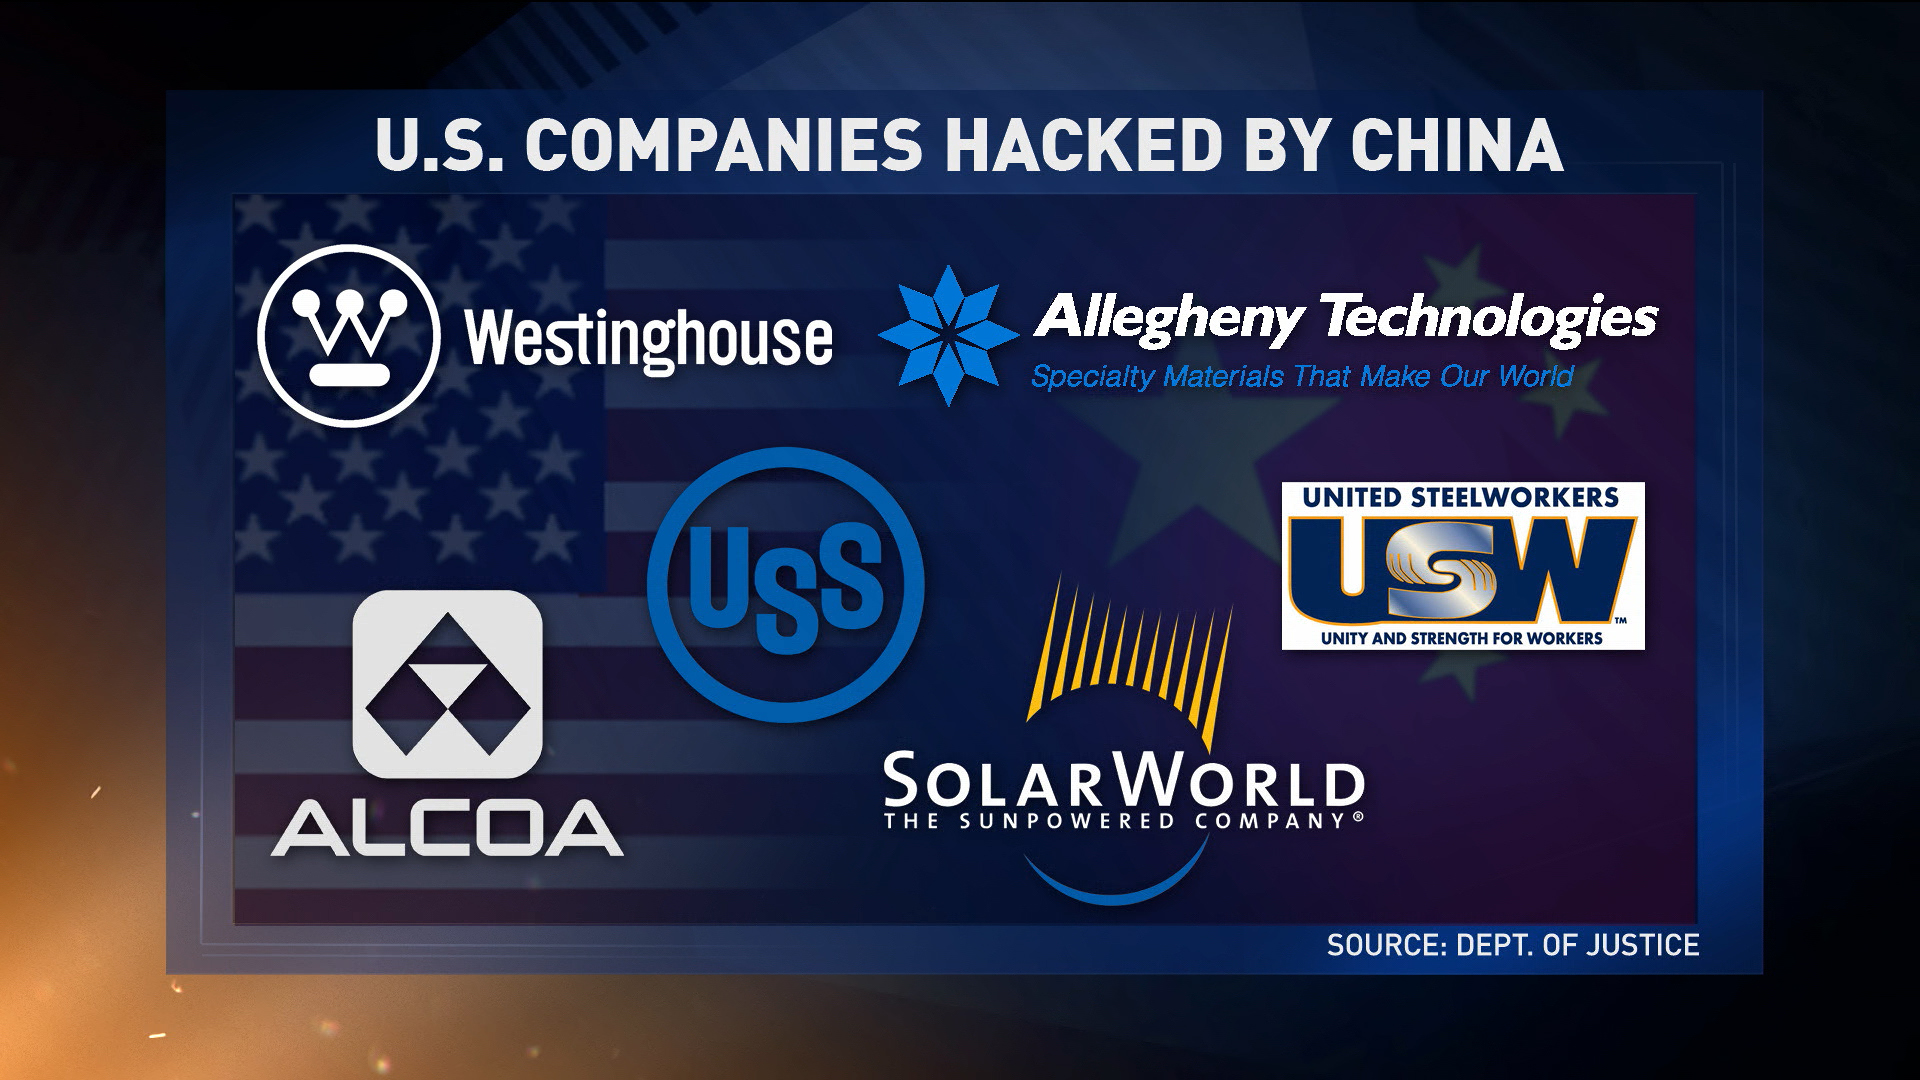 DOJ protects cyber security of US companies